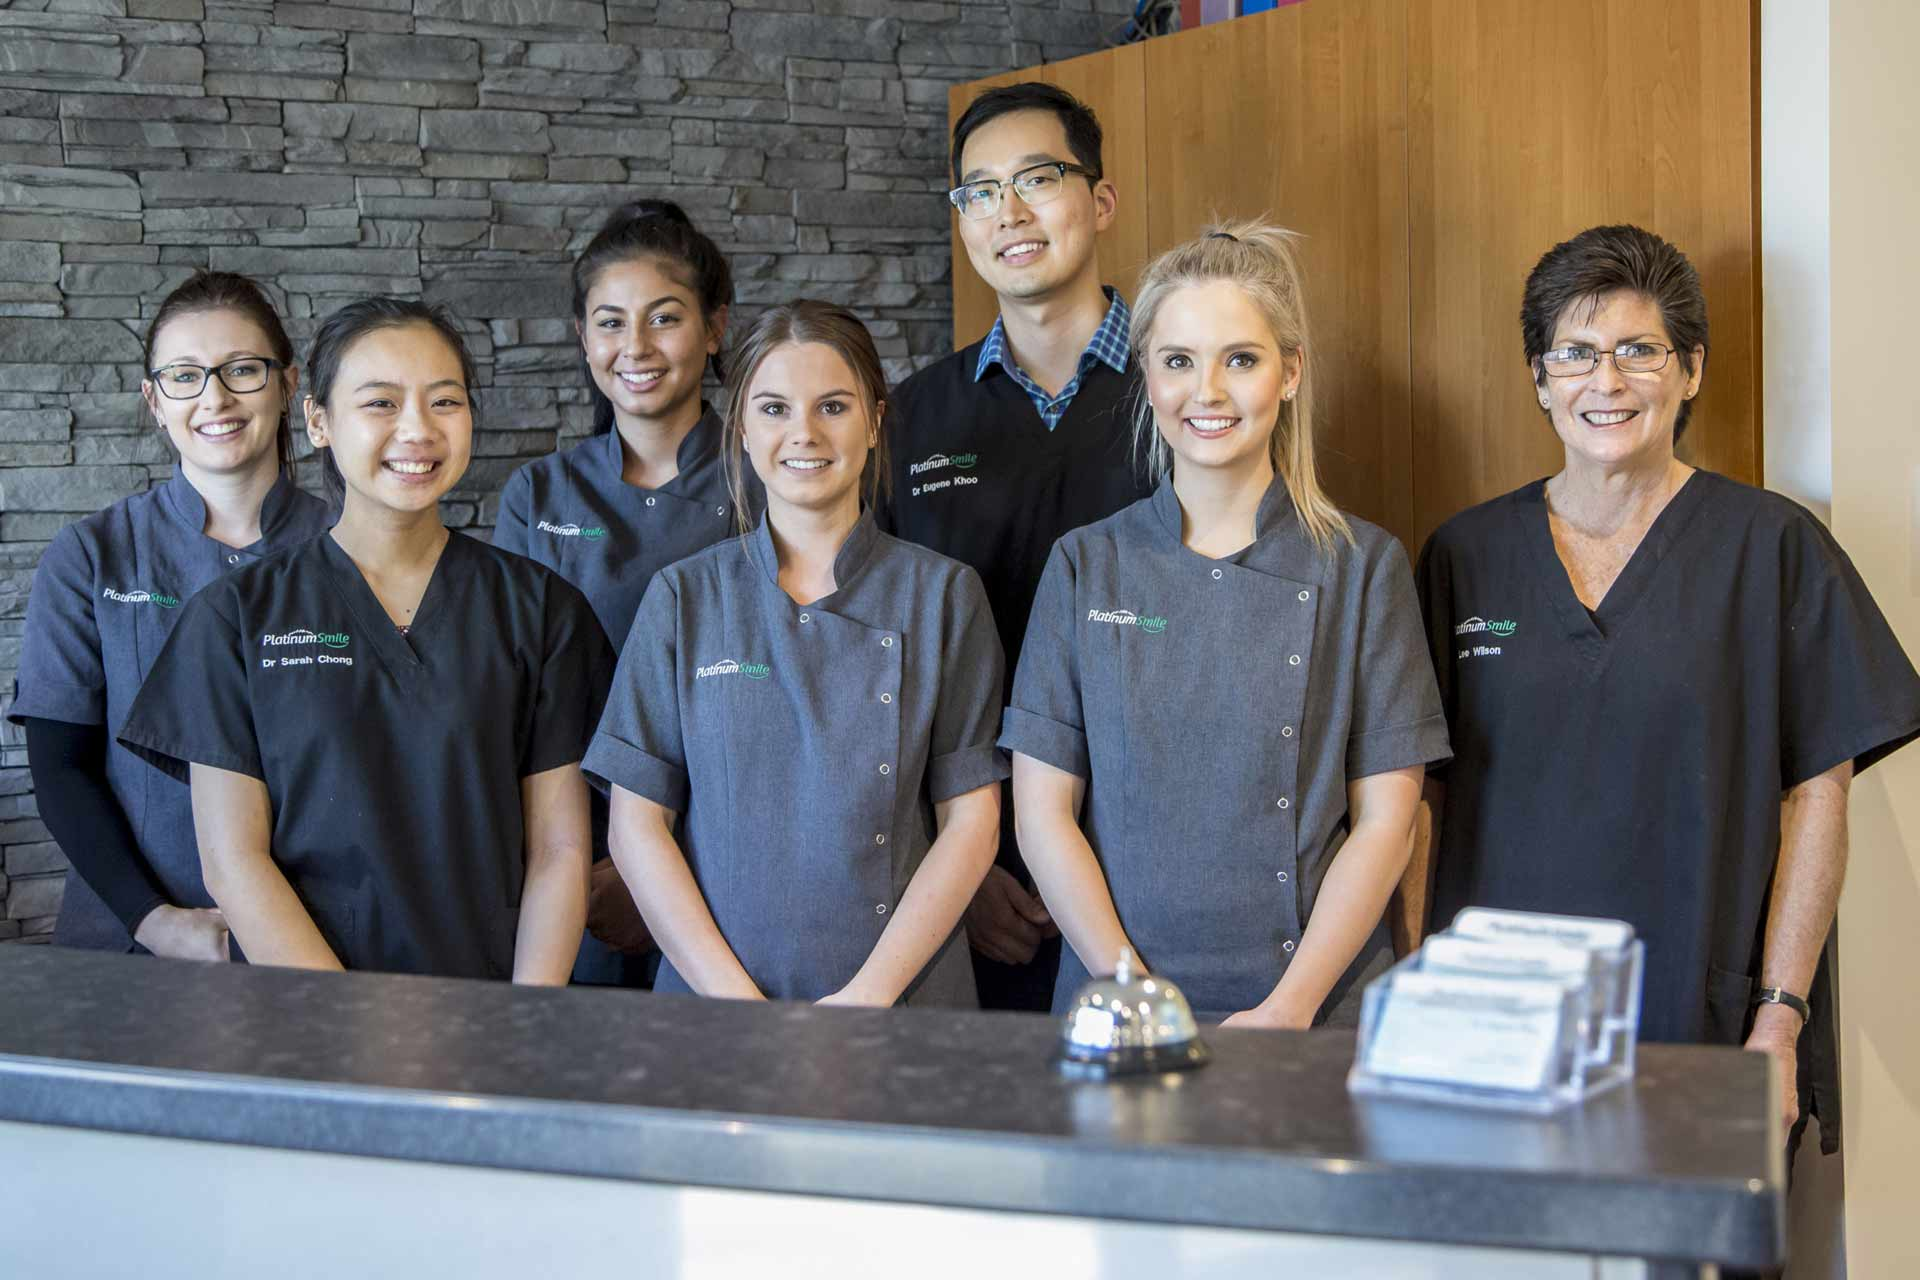 Platinum Smile Dental